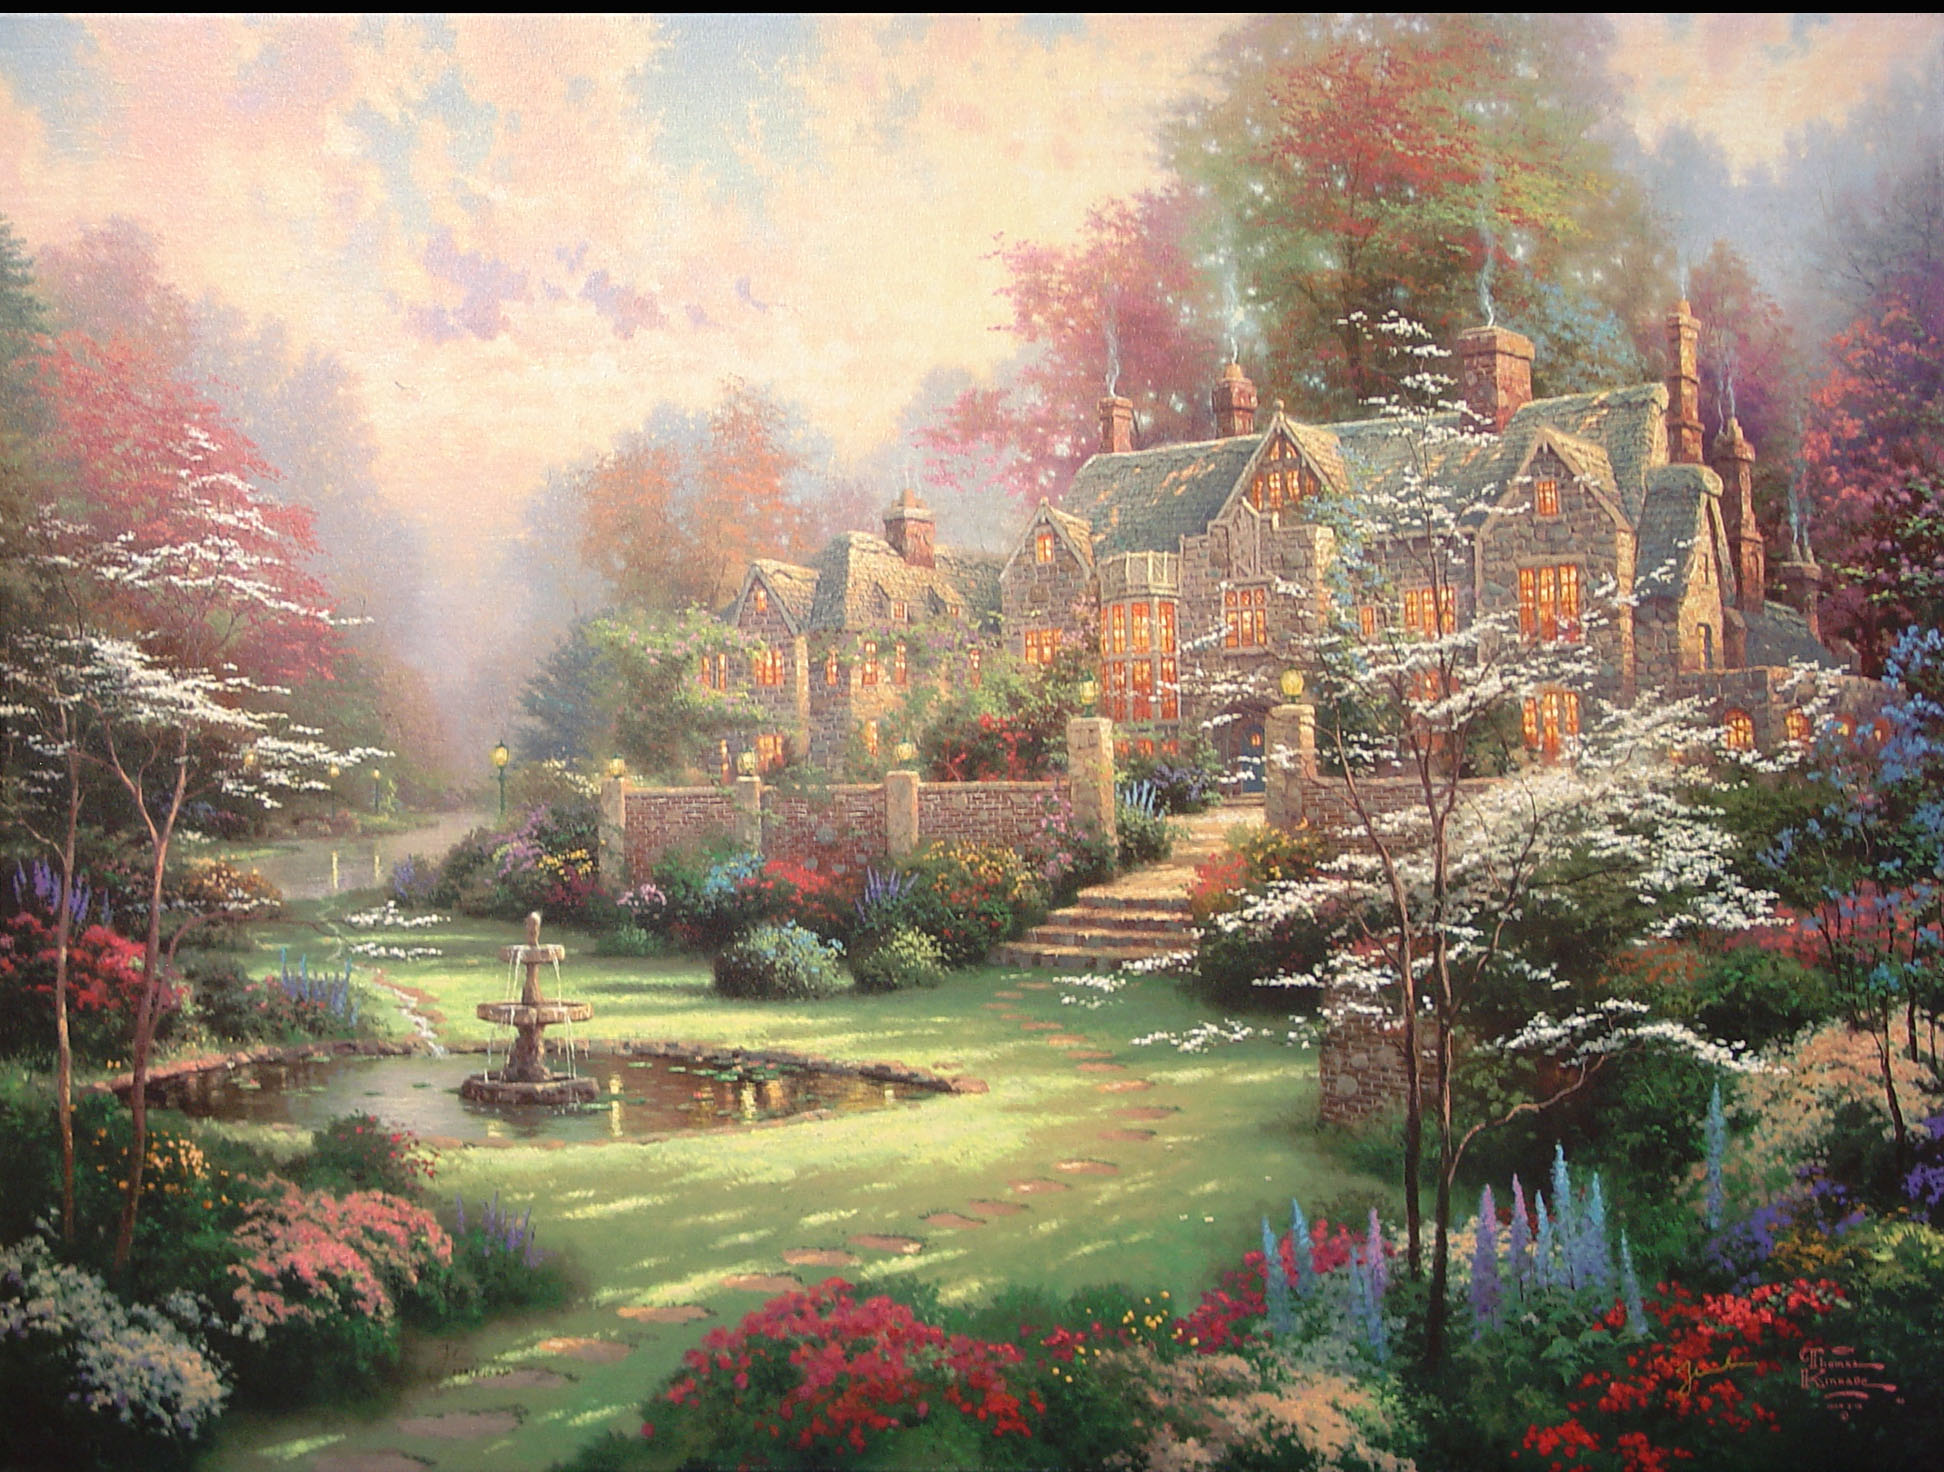 Thomas kinkade limited edition prints inspirational art for Garden painting images